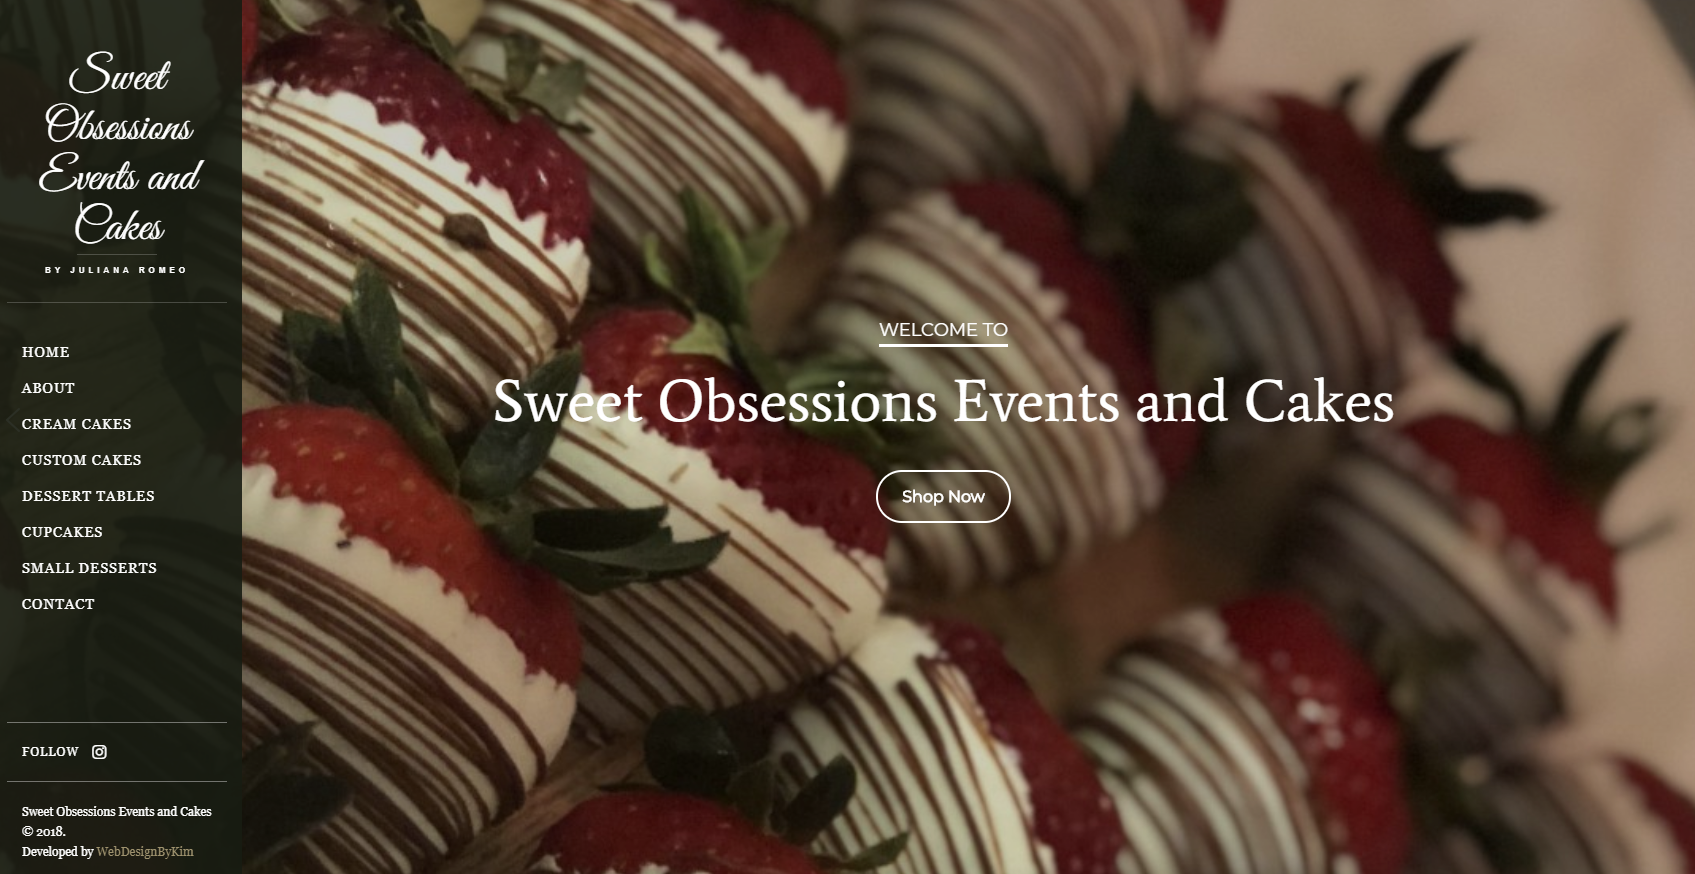 Sweet Obsessions Events and Cakes Website